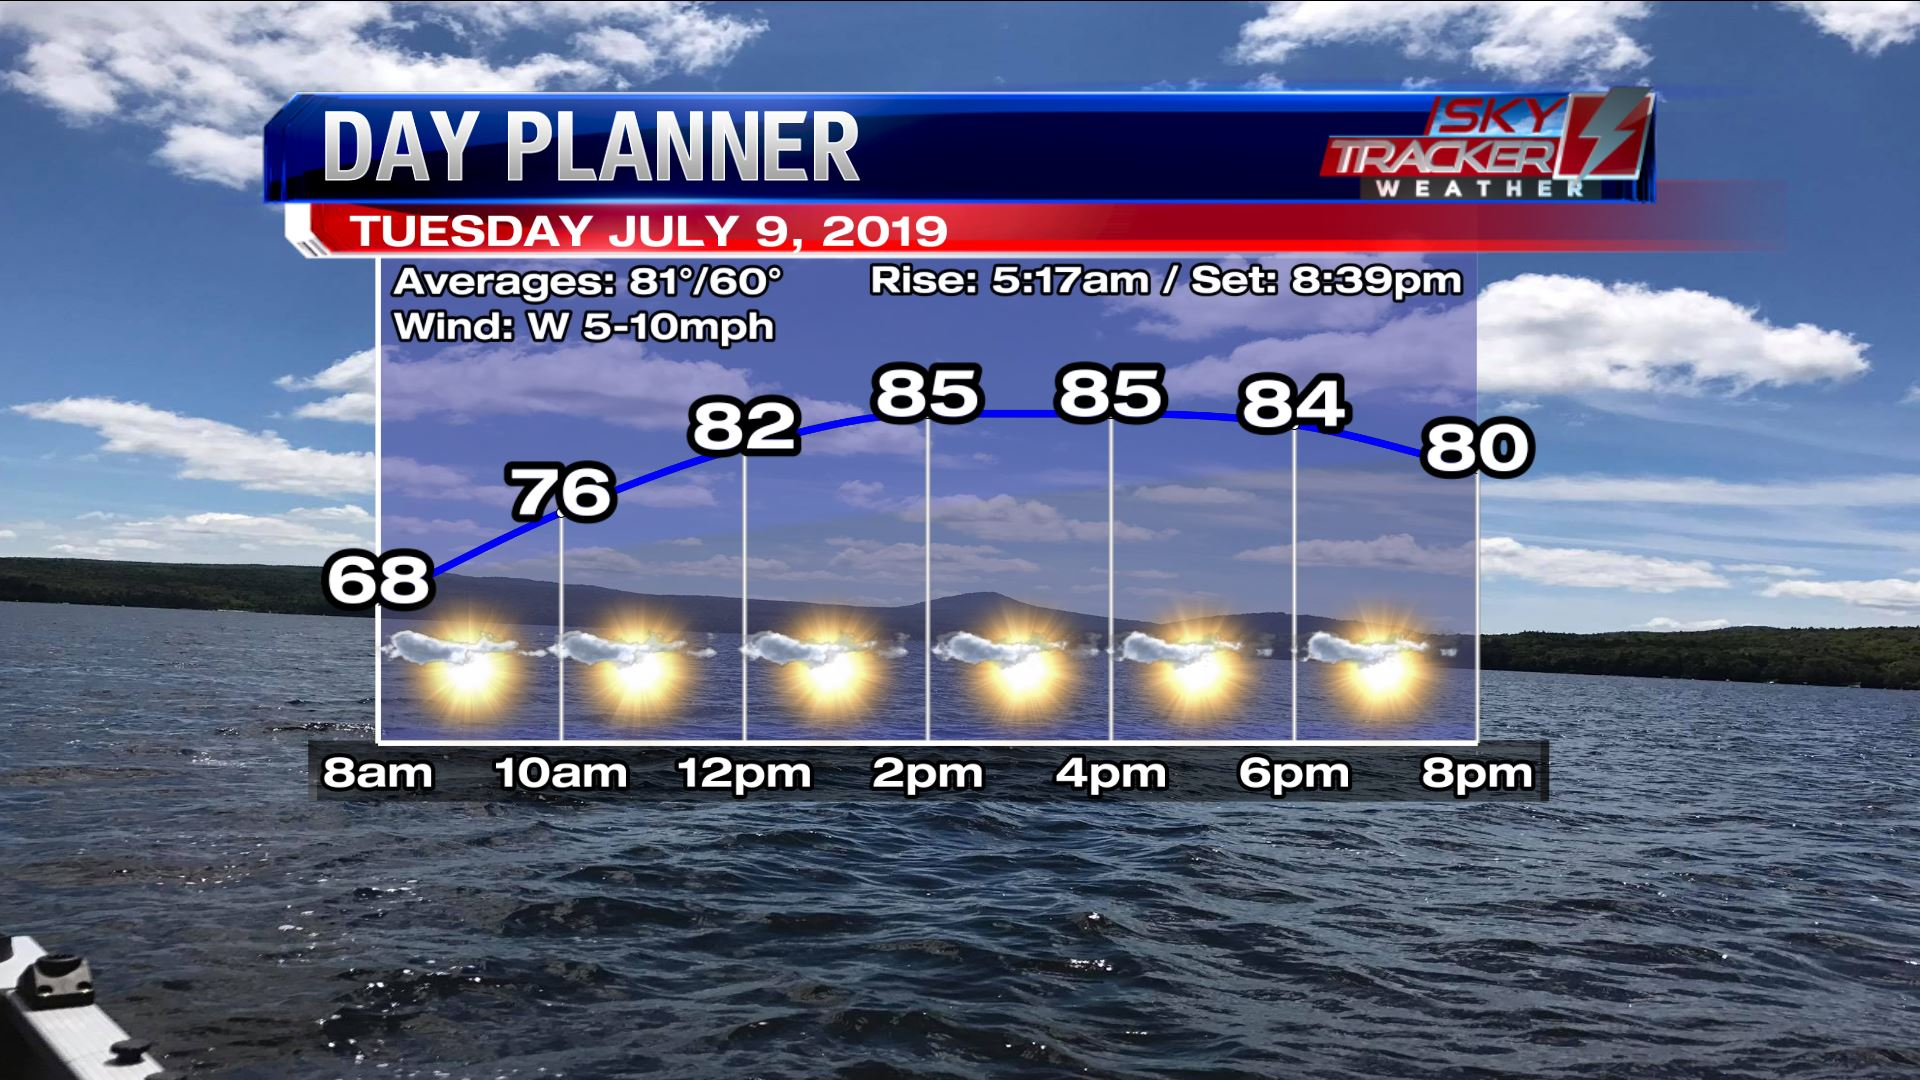 Planner for Tuesday July 9 2019